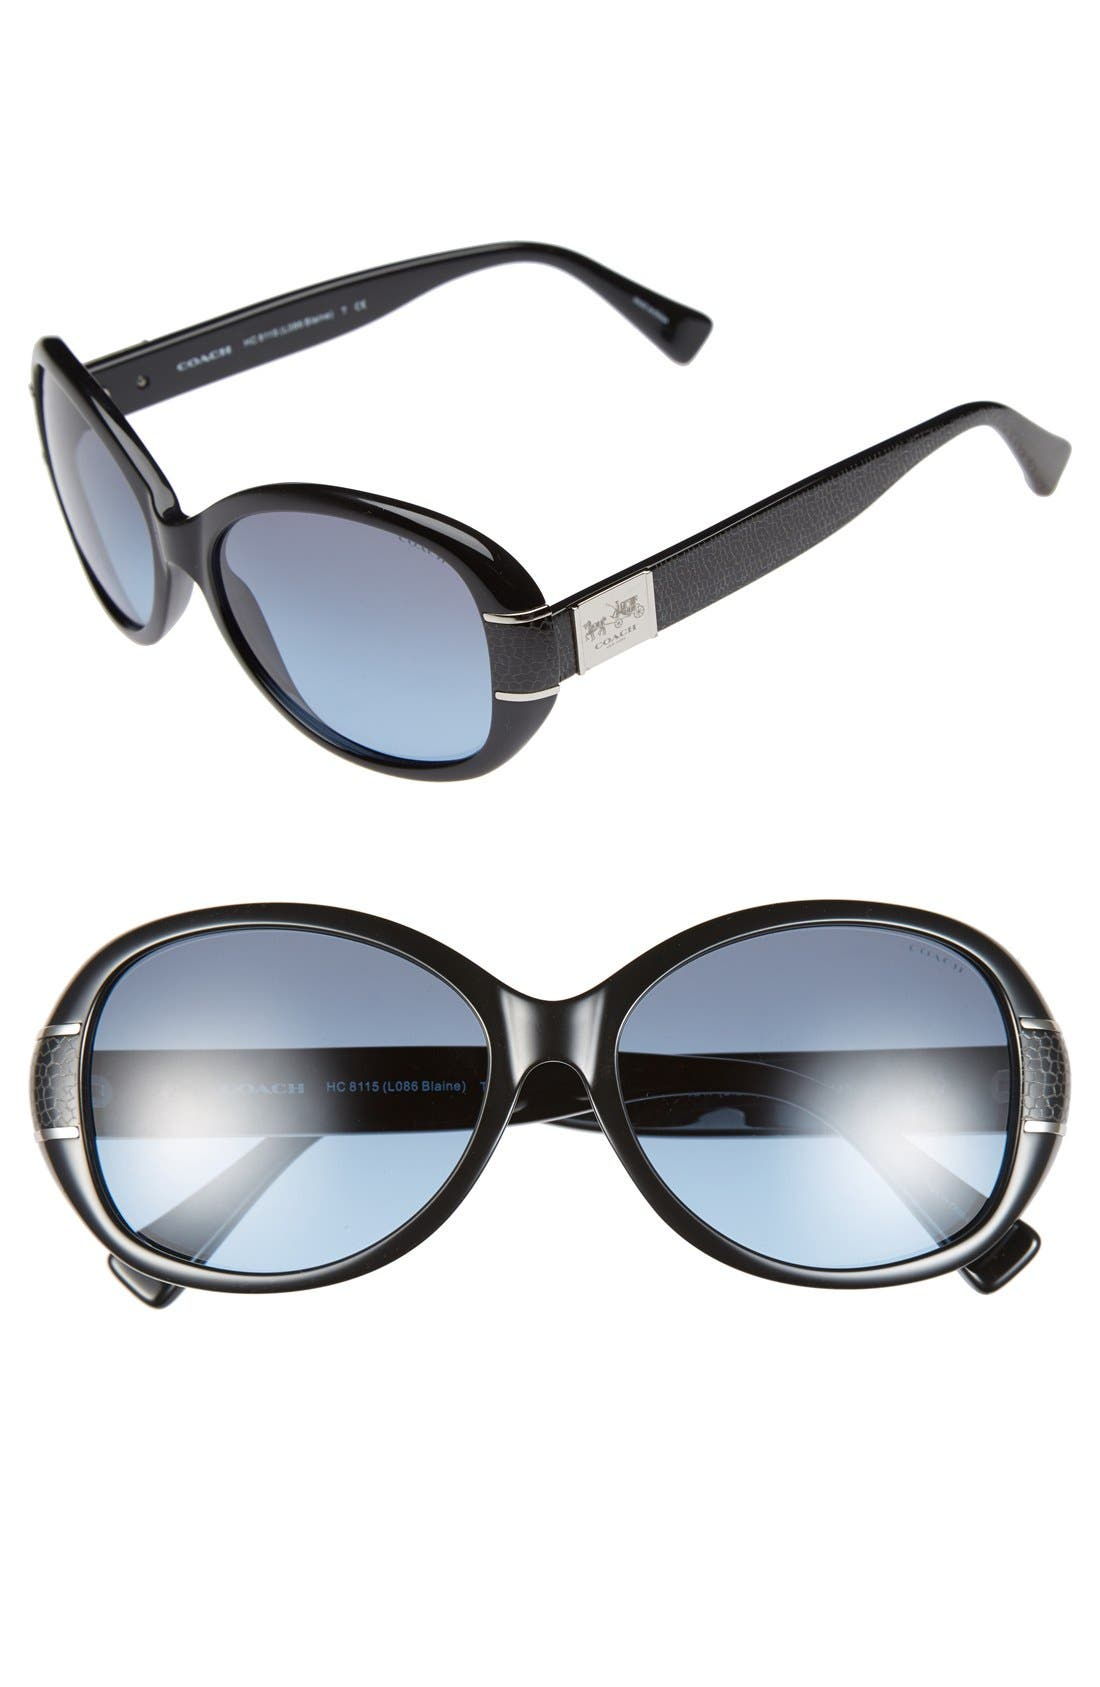 Main Image - COACH 'Blaine' 57mm Sunglasses